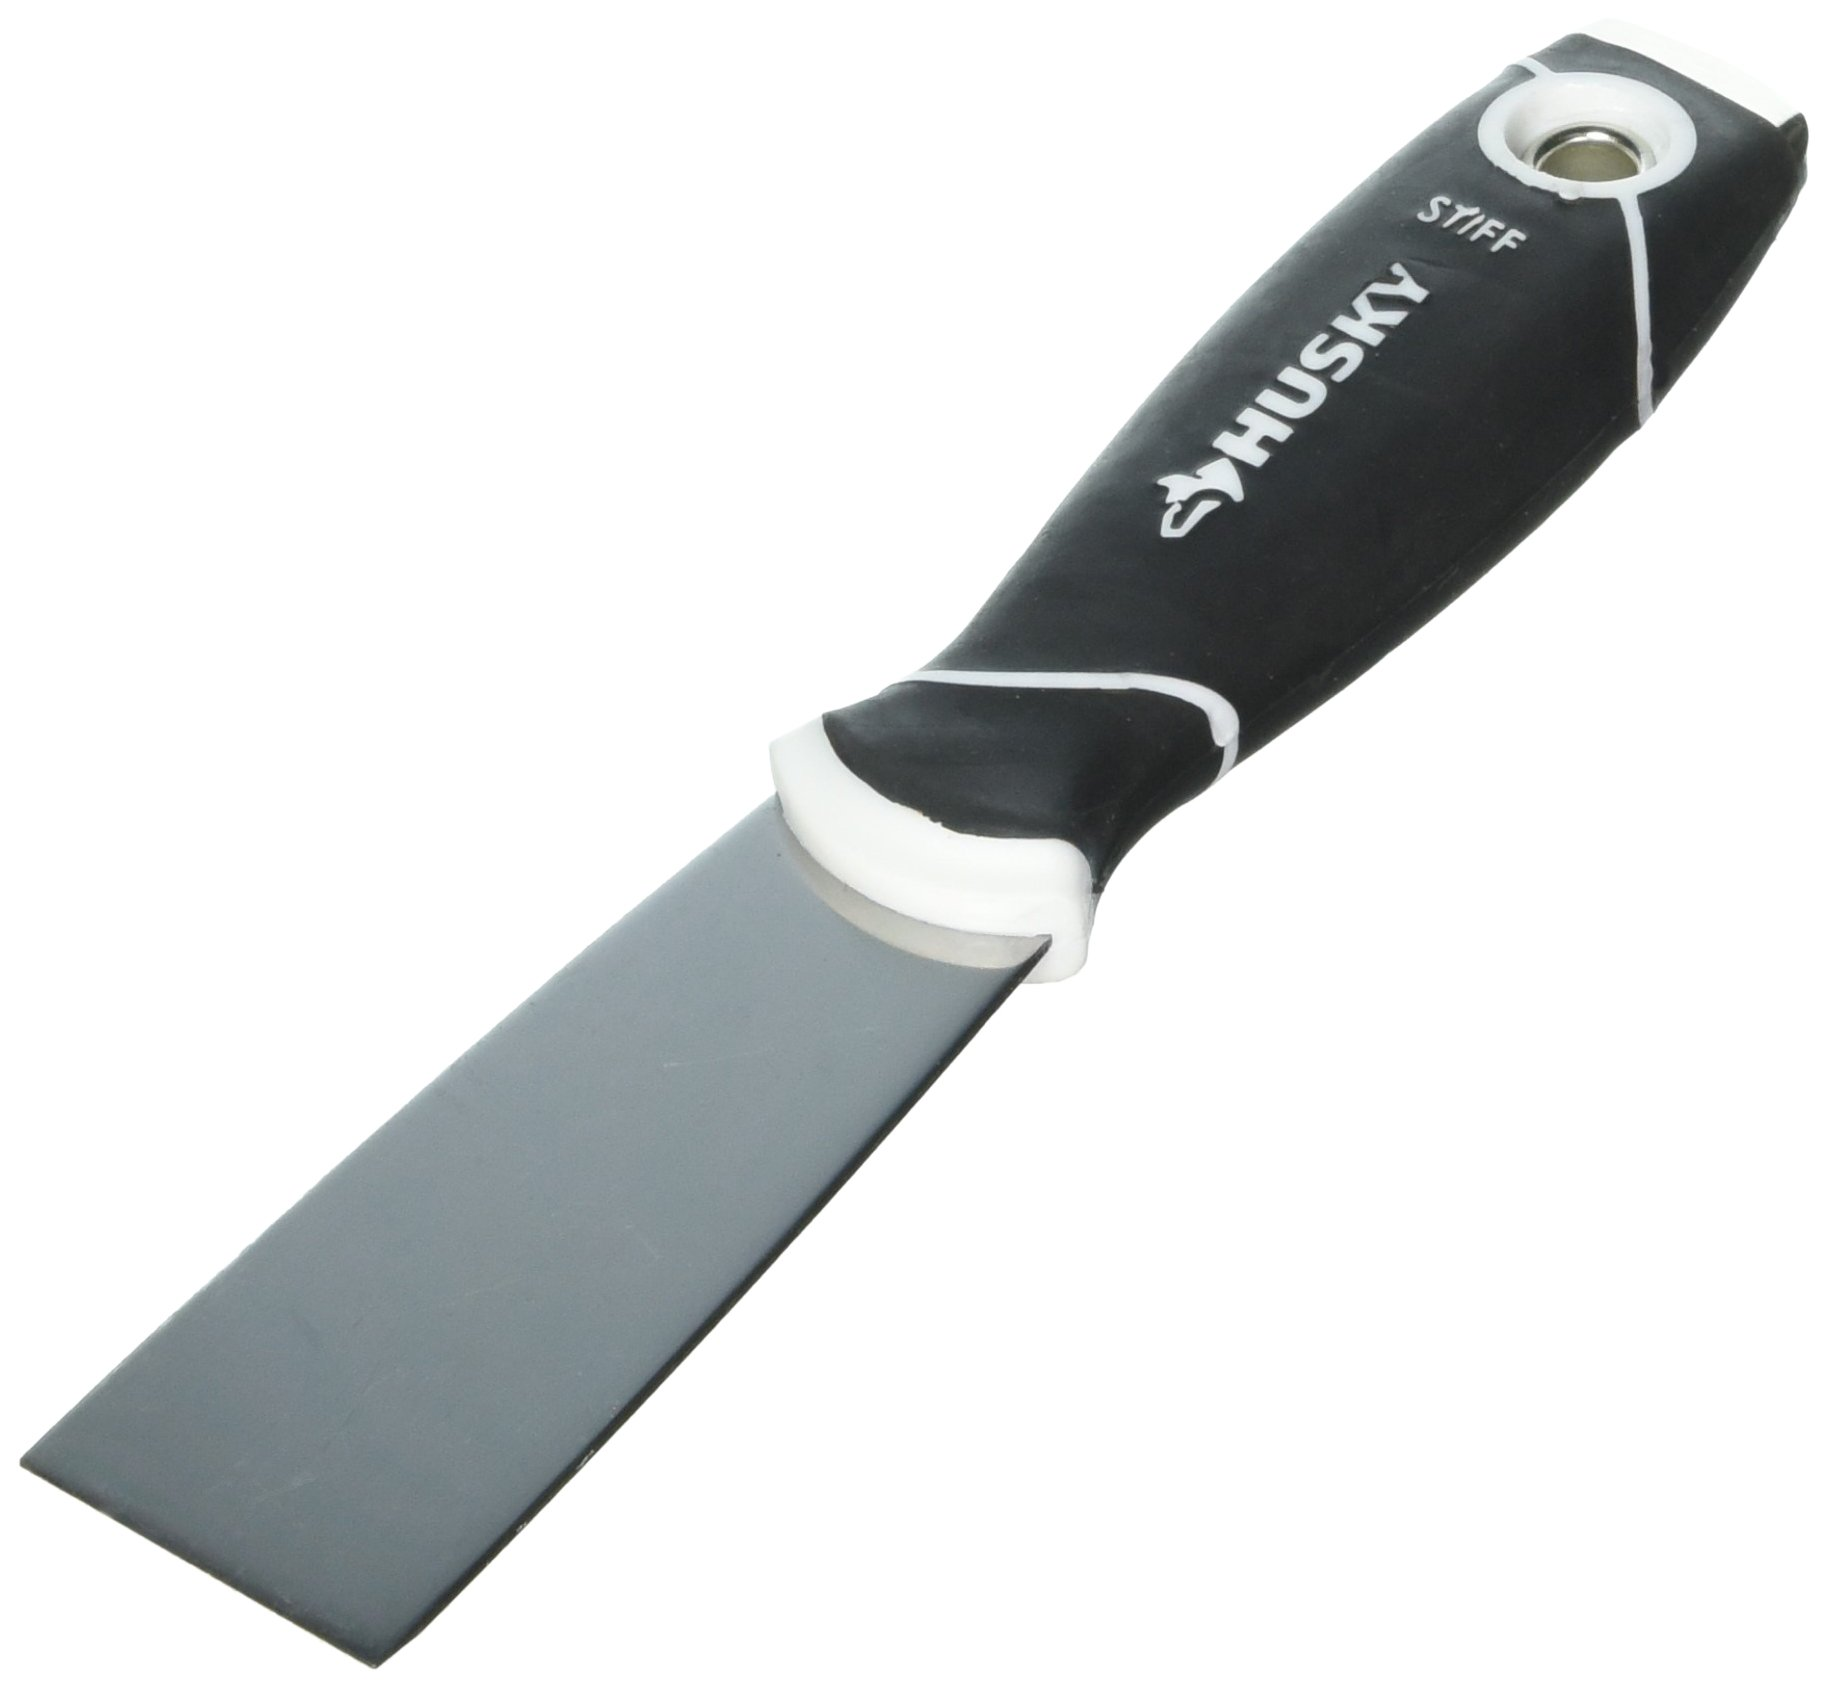 Husky 1-1/2 in. Chisel Putty Knife